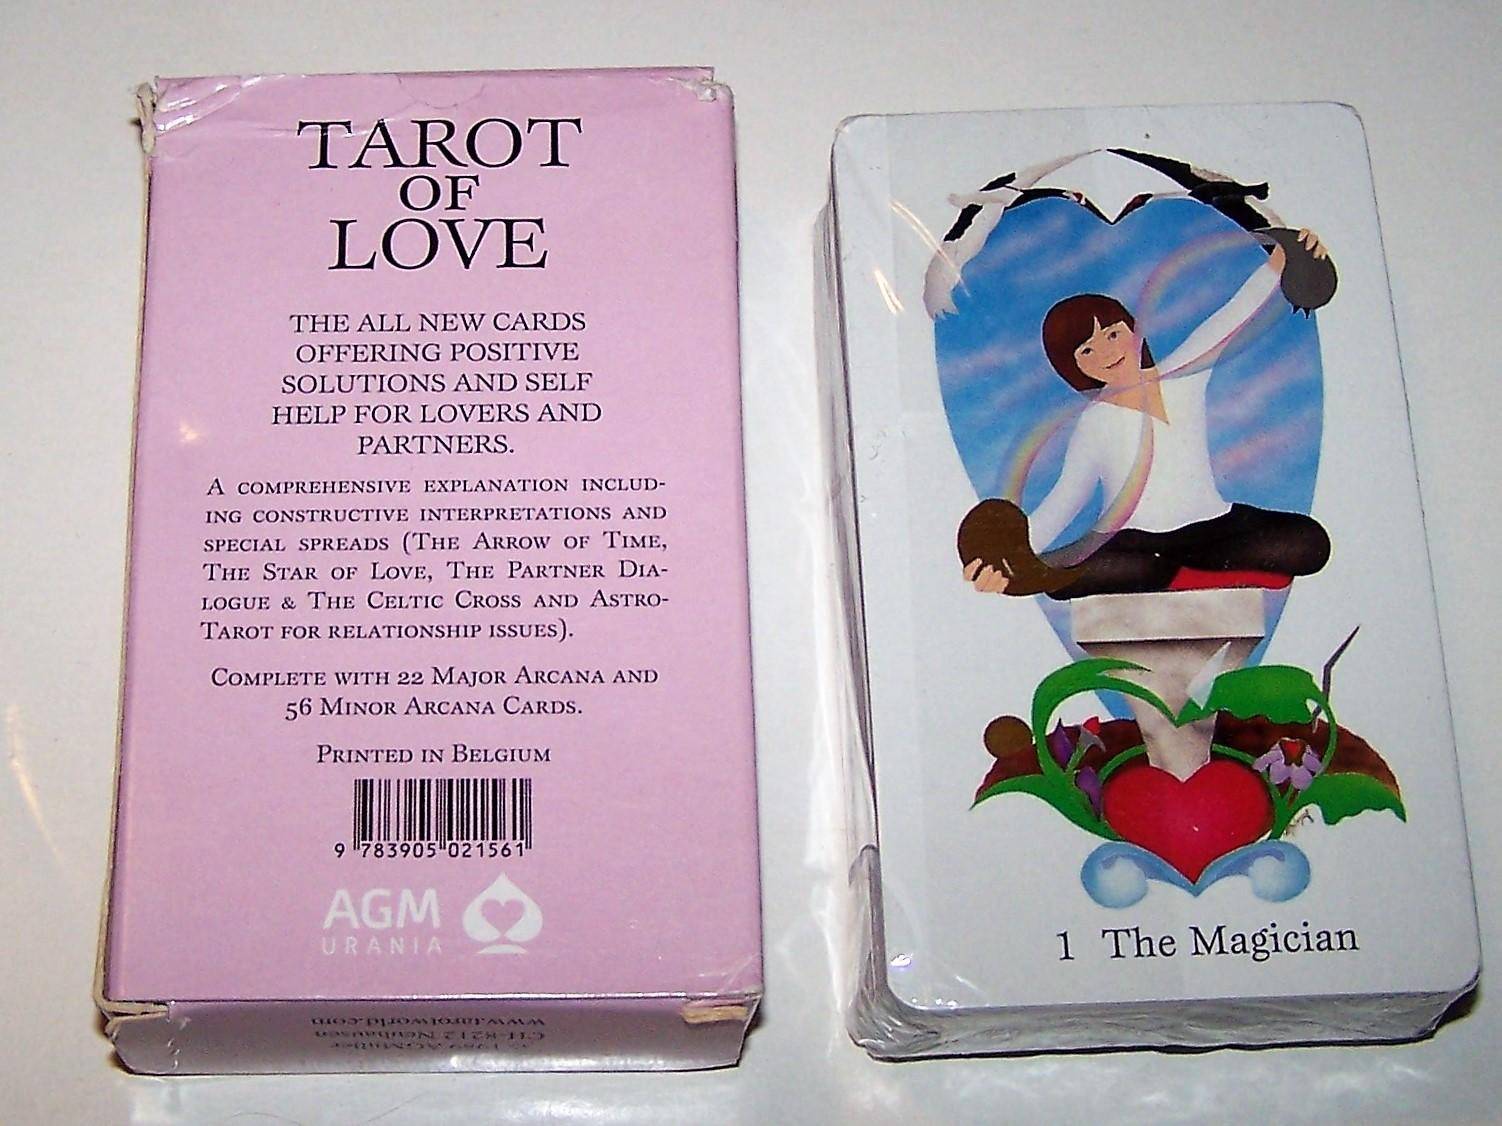 Tarot of love / Kohls 30 percent off code